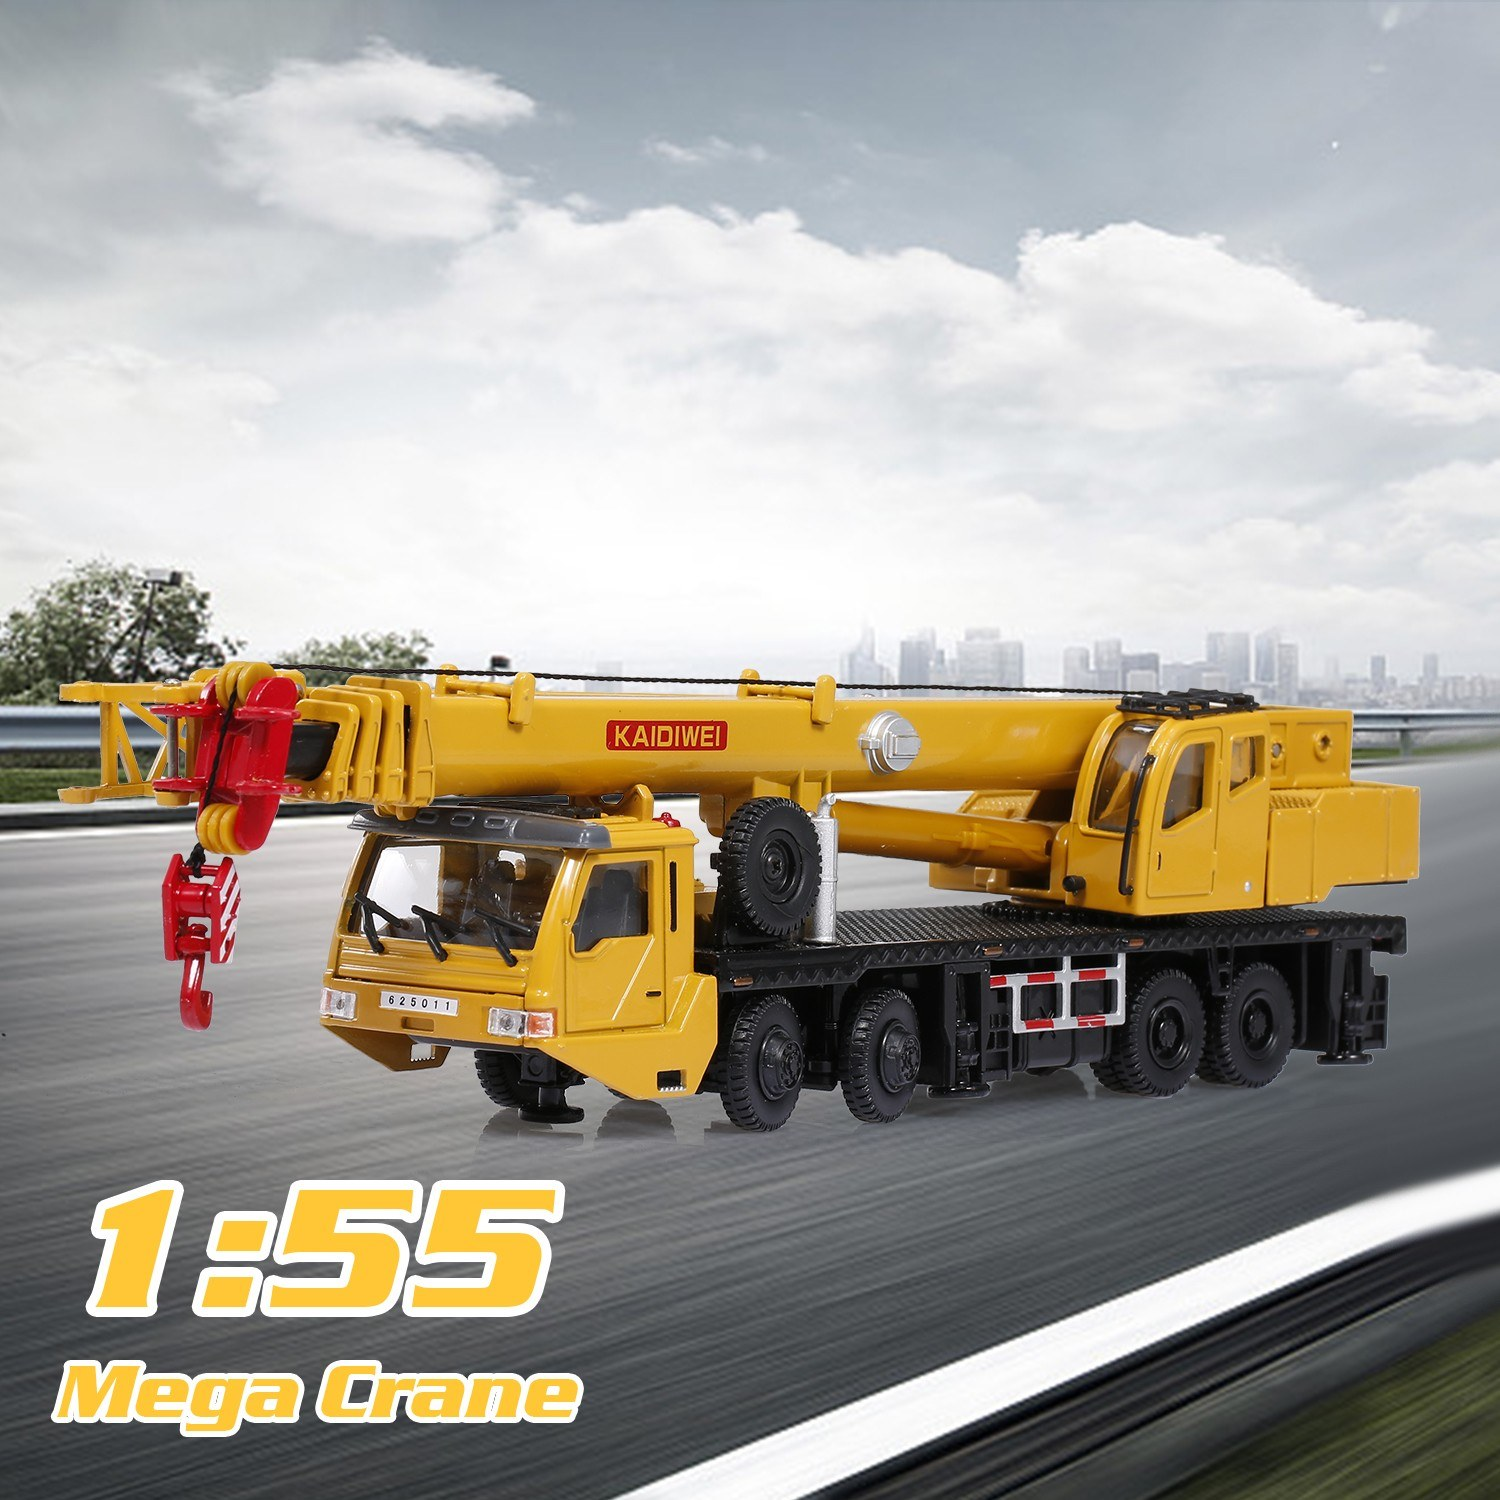 1:55 Mega Crane Lifter Alloy Diecast Model with Steering Linkage 360 Degree Rotate Work Platform Crane Decoration Children Gifts Toy for Kids